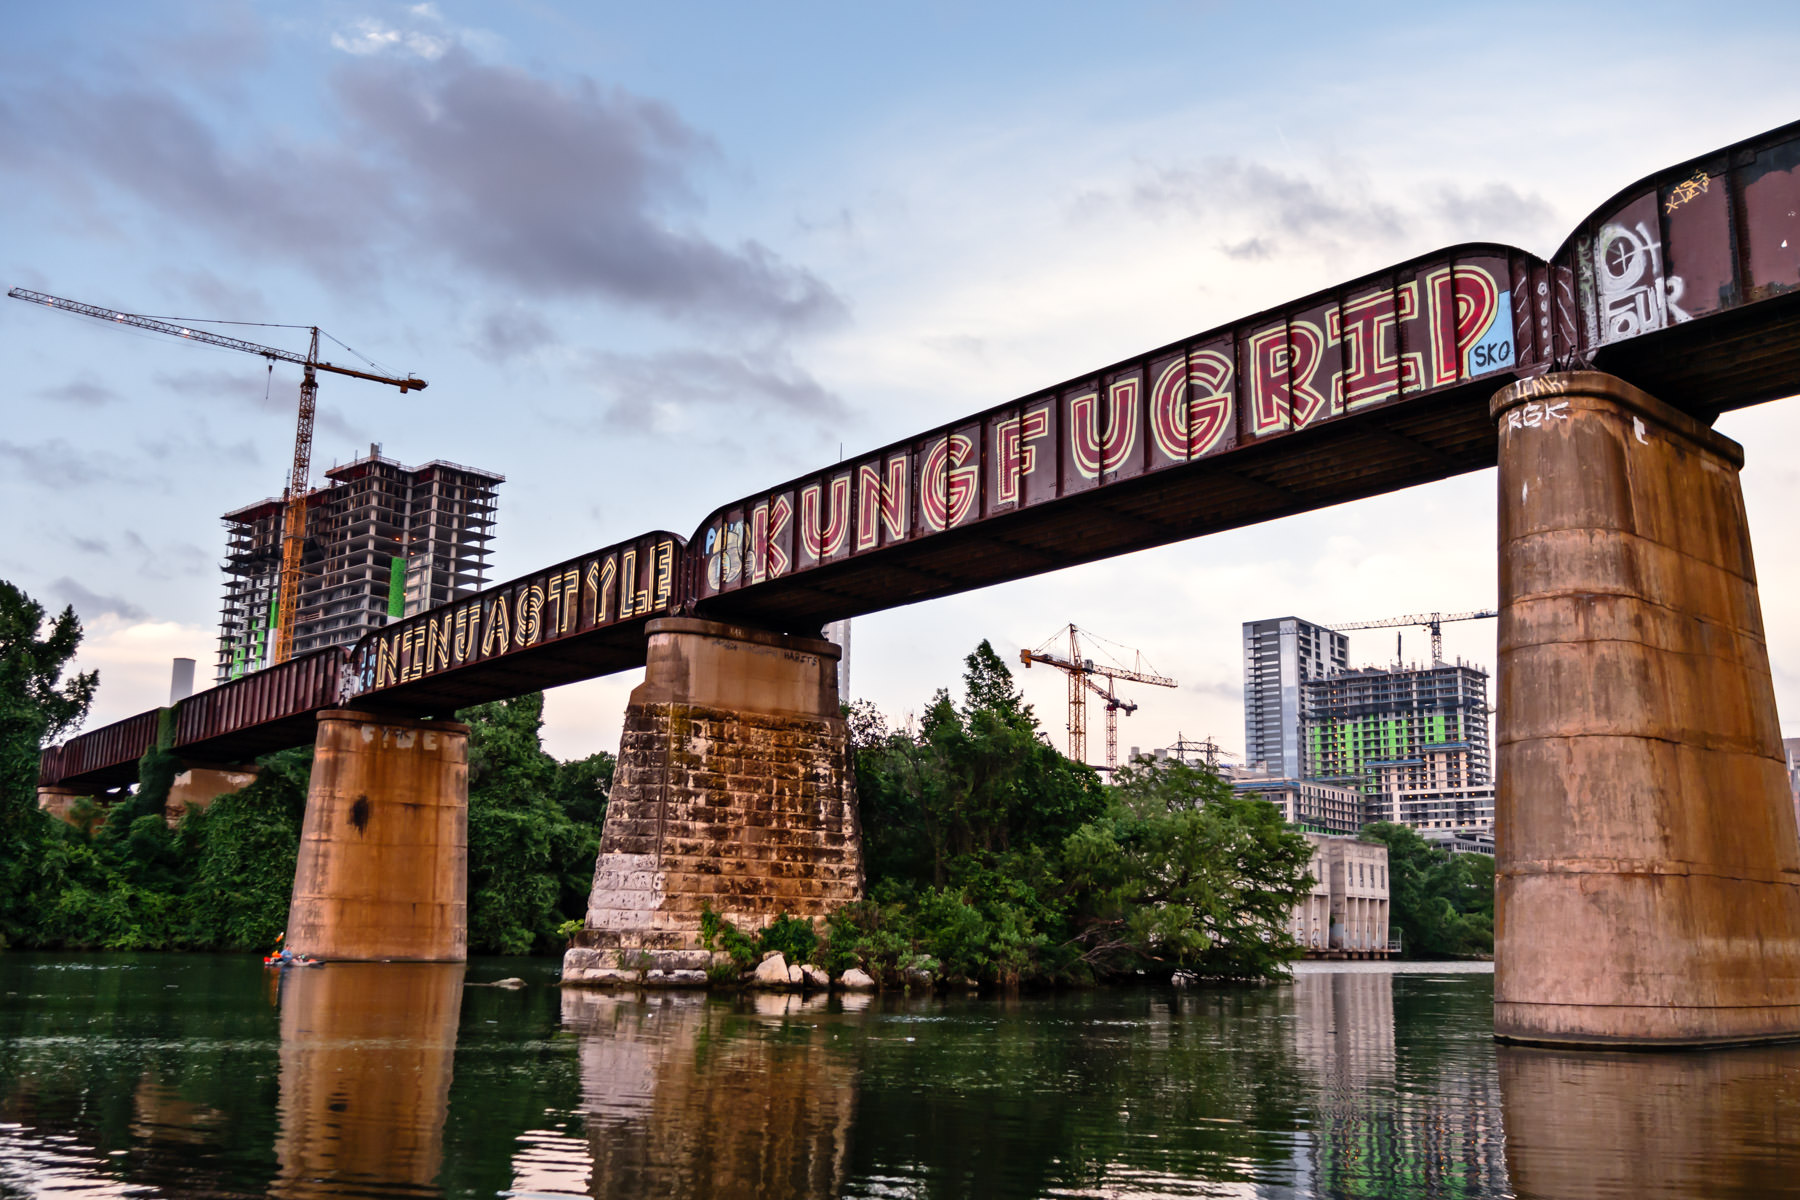 The Missouri-Pacific/Union Pacific Railroad Bridge—built in 1902—spans Lady Bird Lake on the south side of Downtown Austin, Texas.